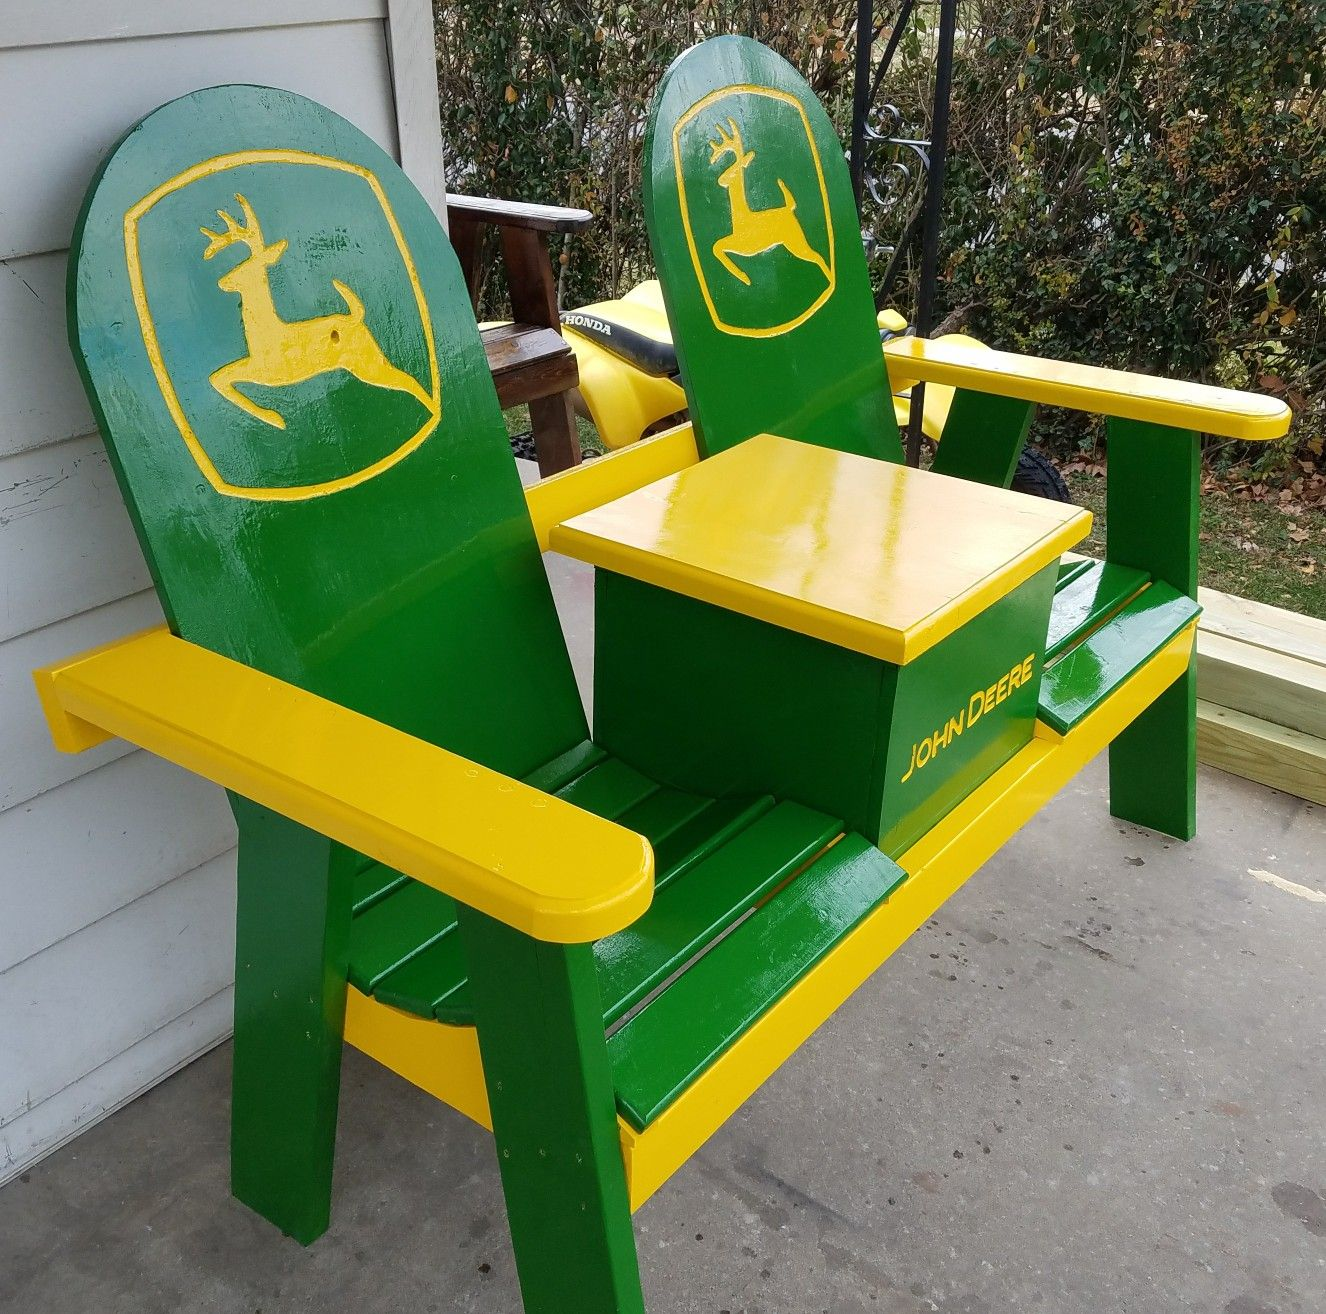 John Deere Porch Bench With A Cooler Porch Benches